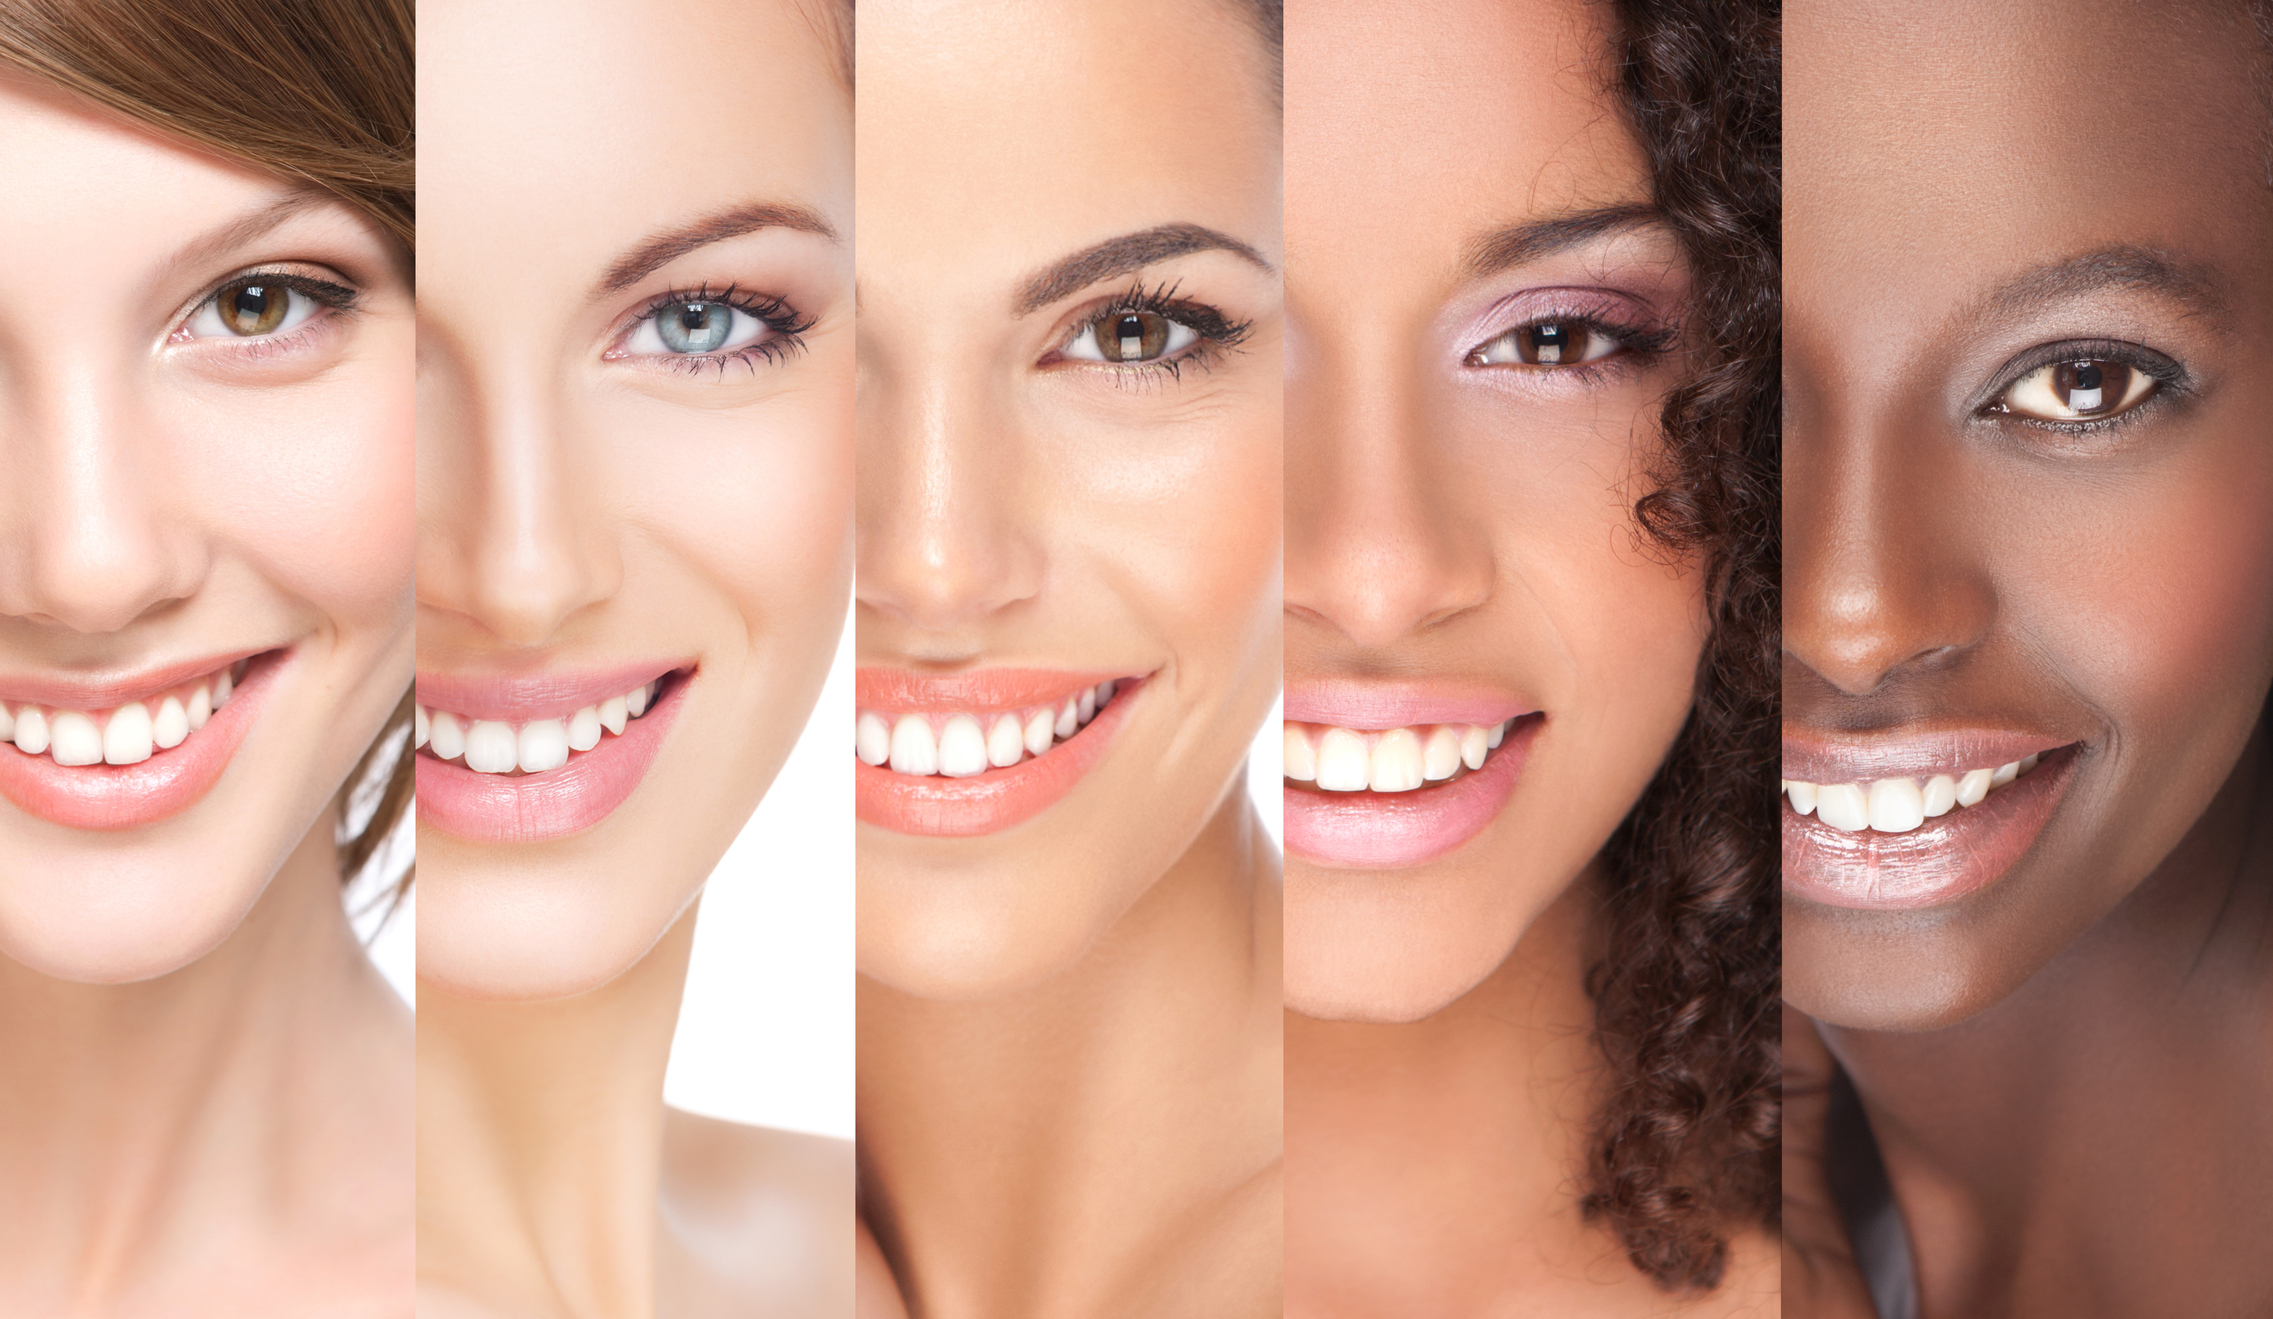 Hyper-Pigmentation  - We all experience pigmentation issues at some point in life. Below are some treatments that can help even skin tone.